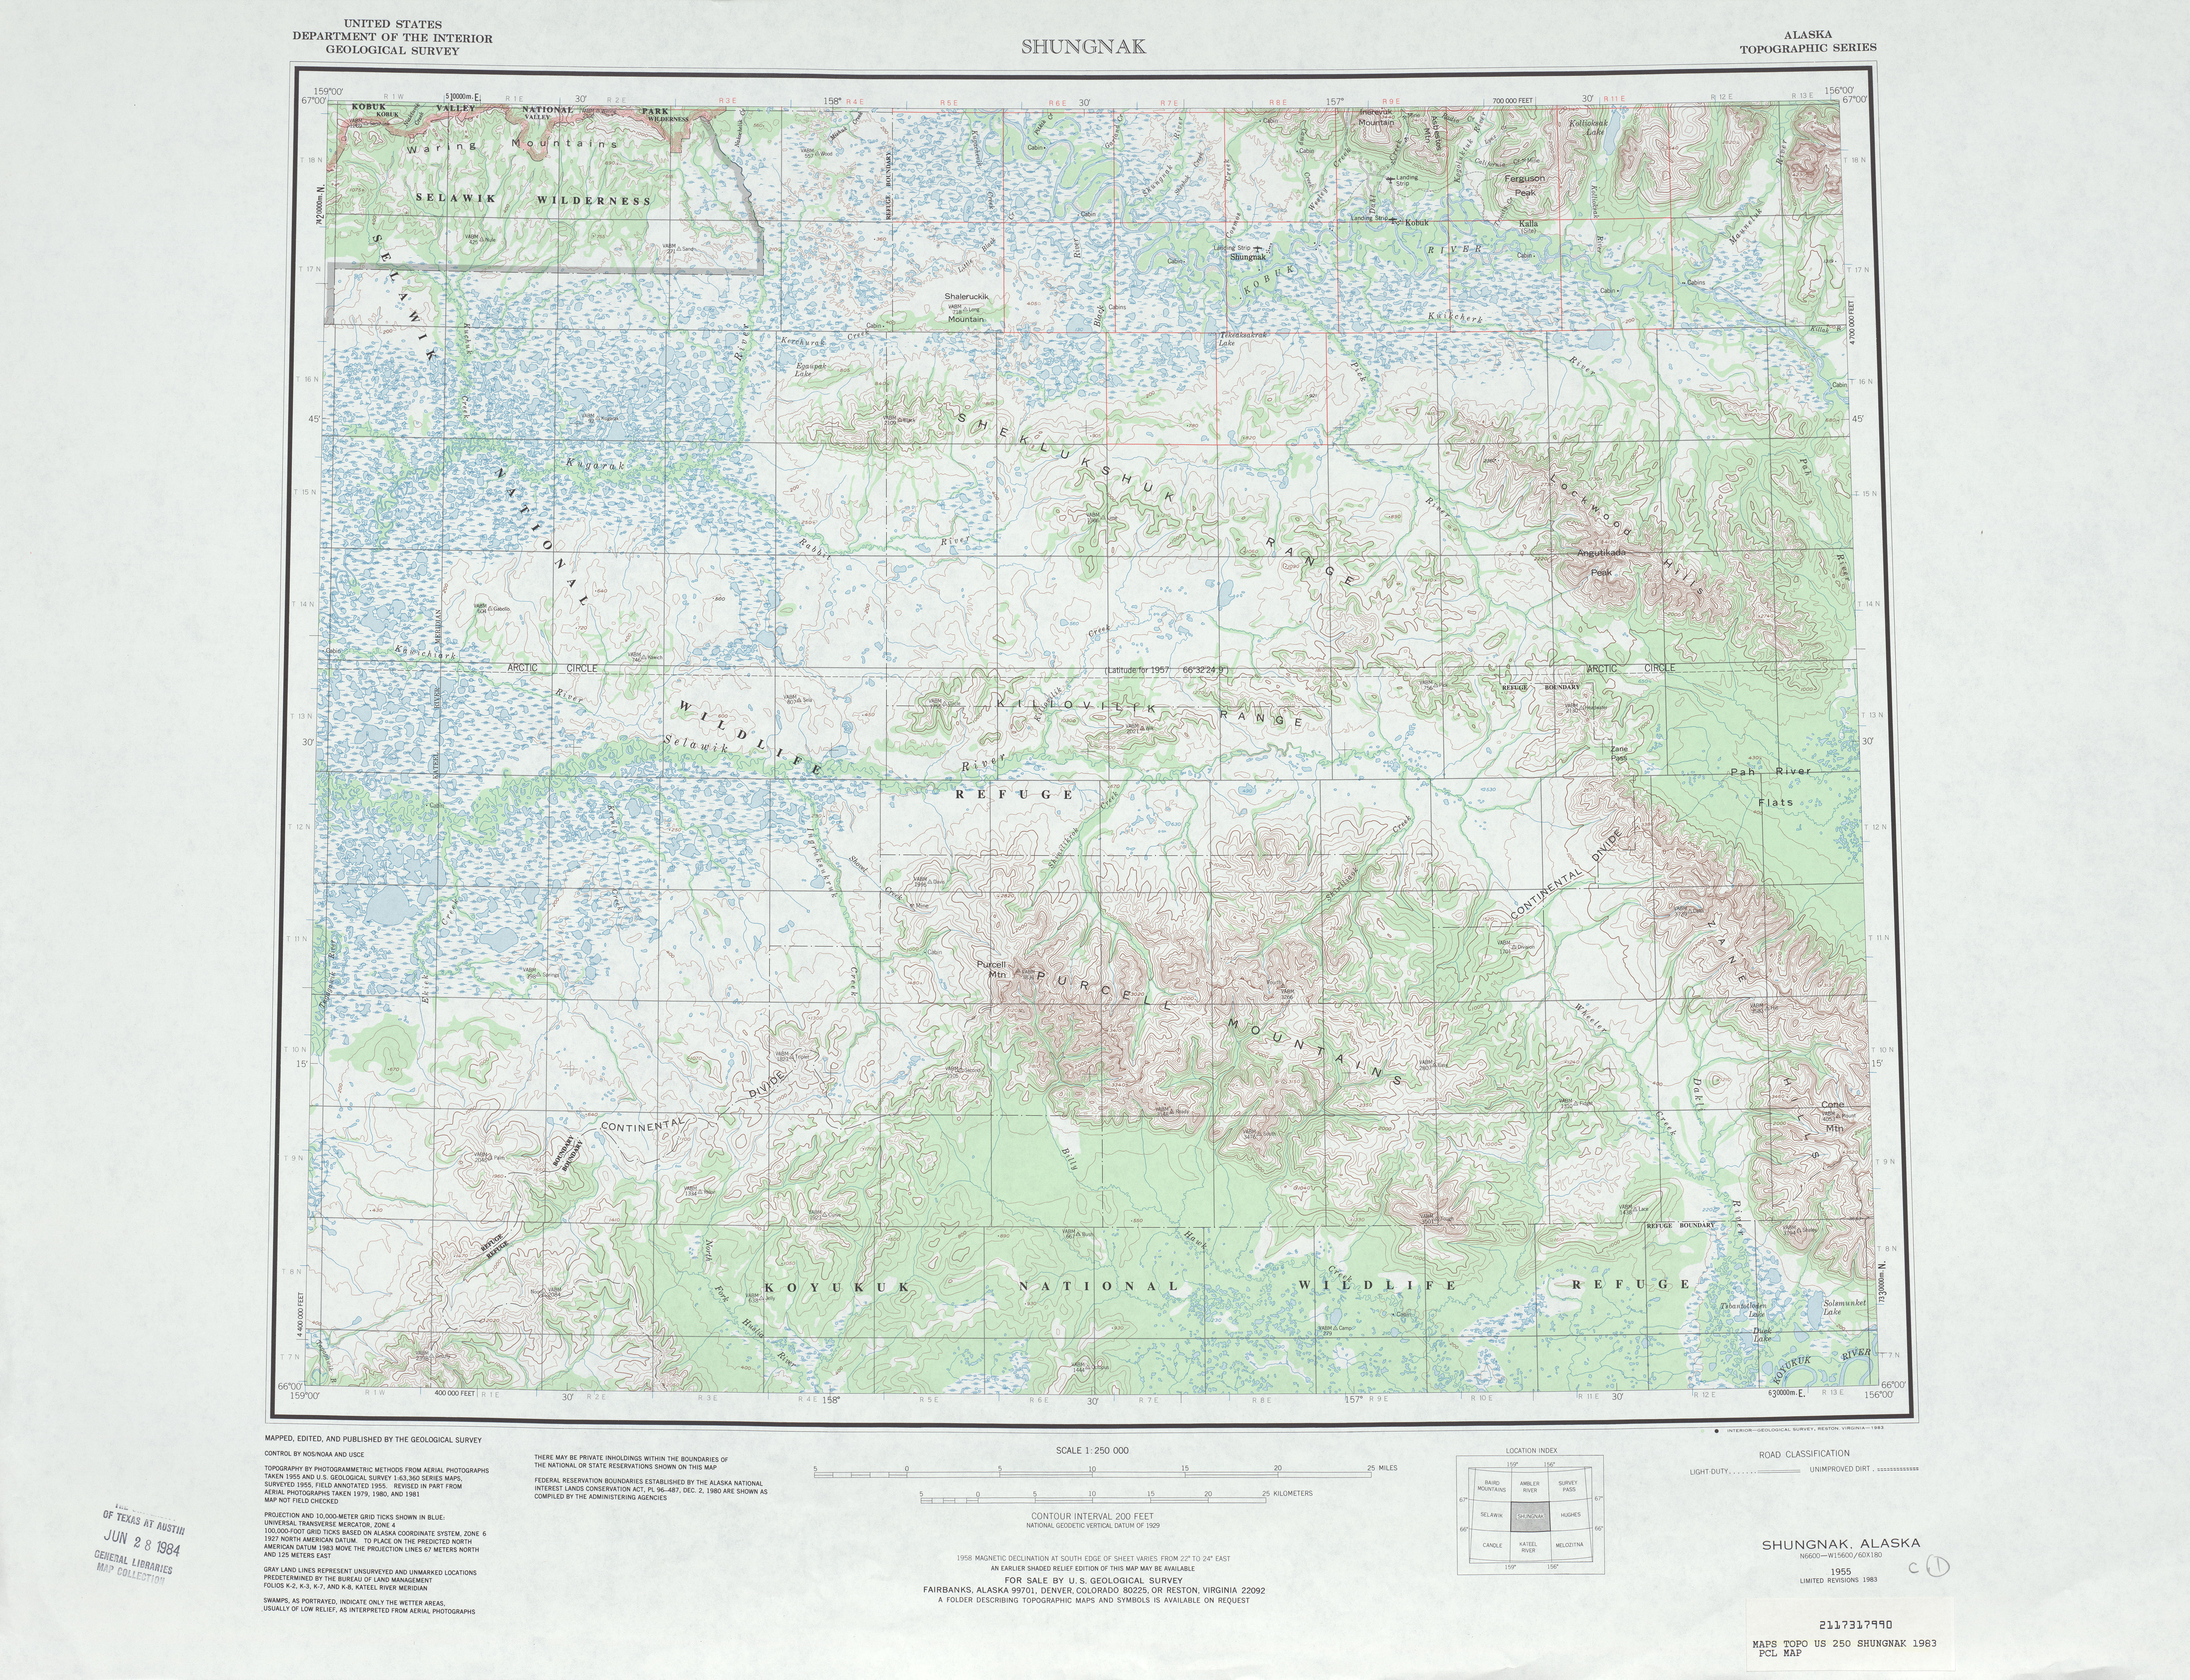 Shungnak Topographic Map Sheet, United States 1983